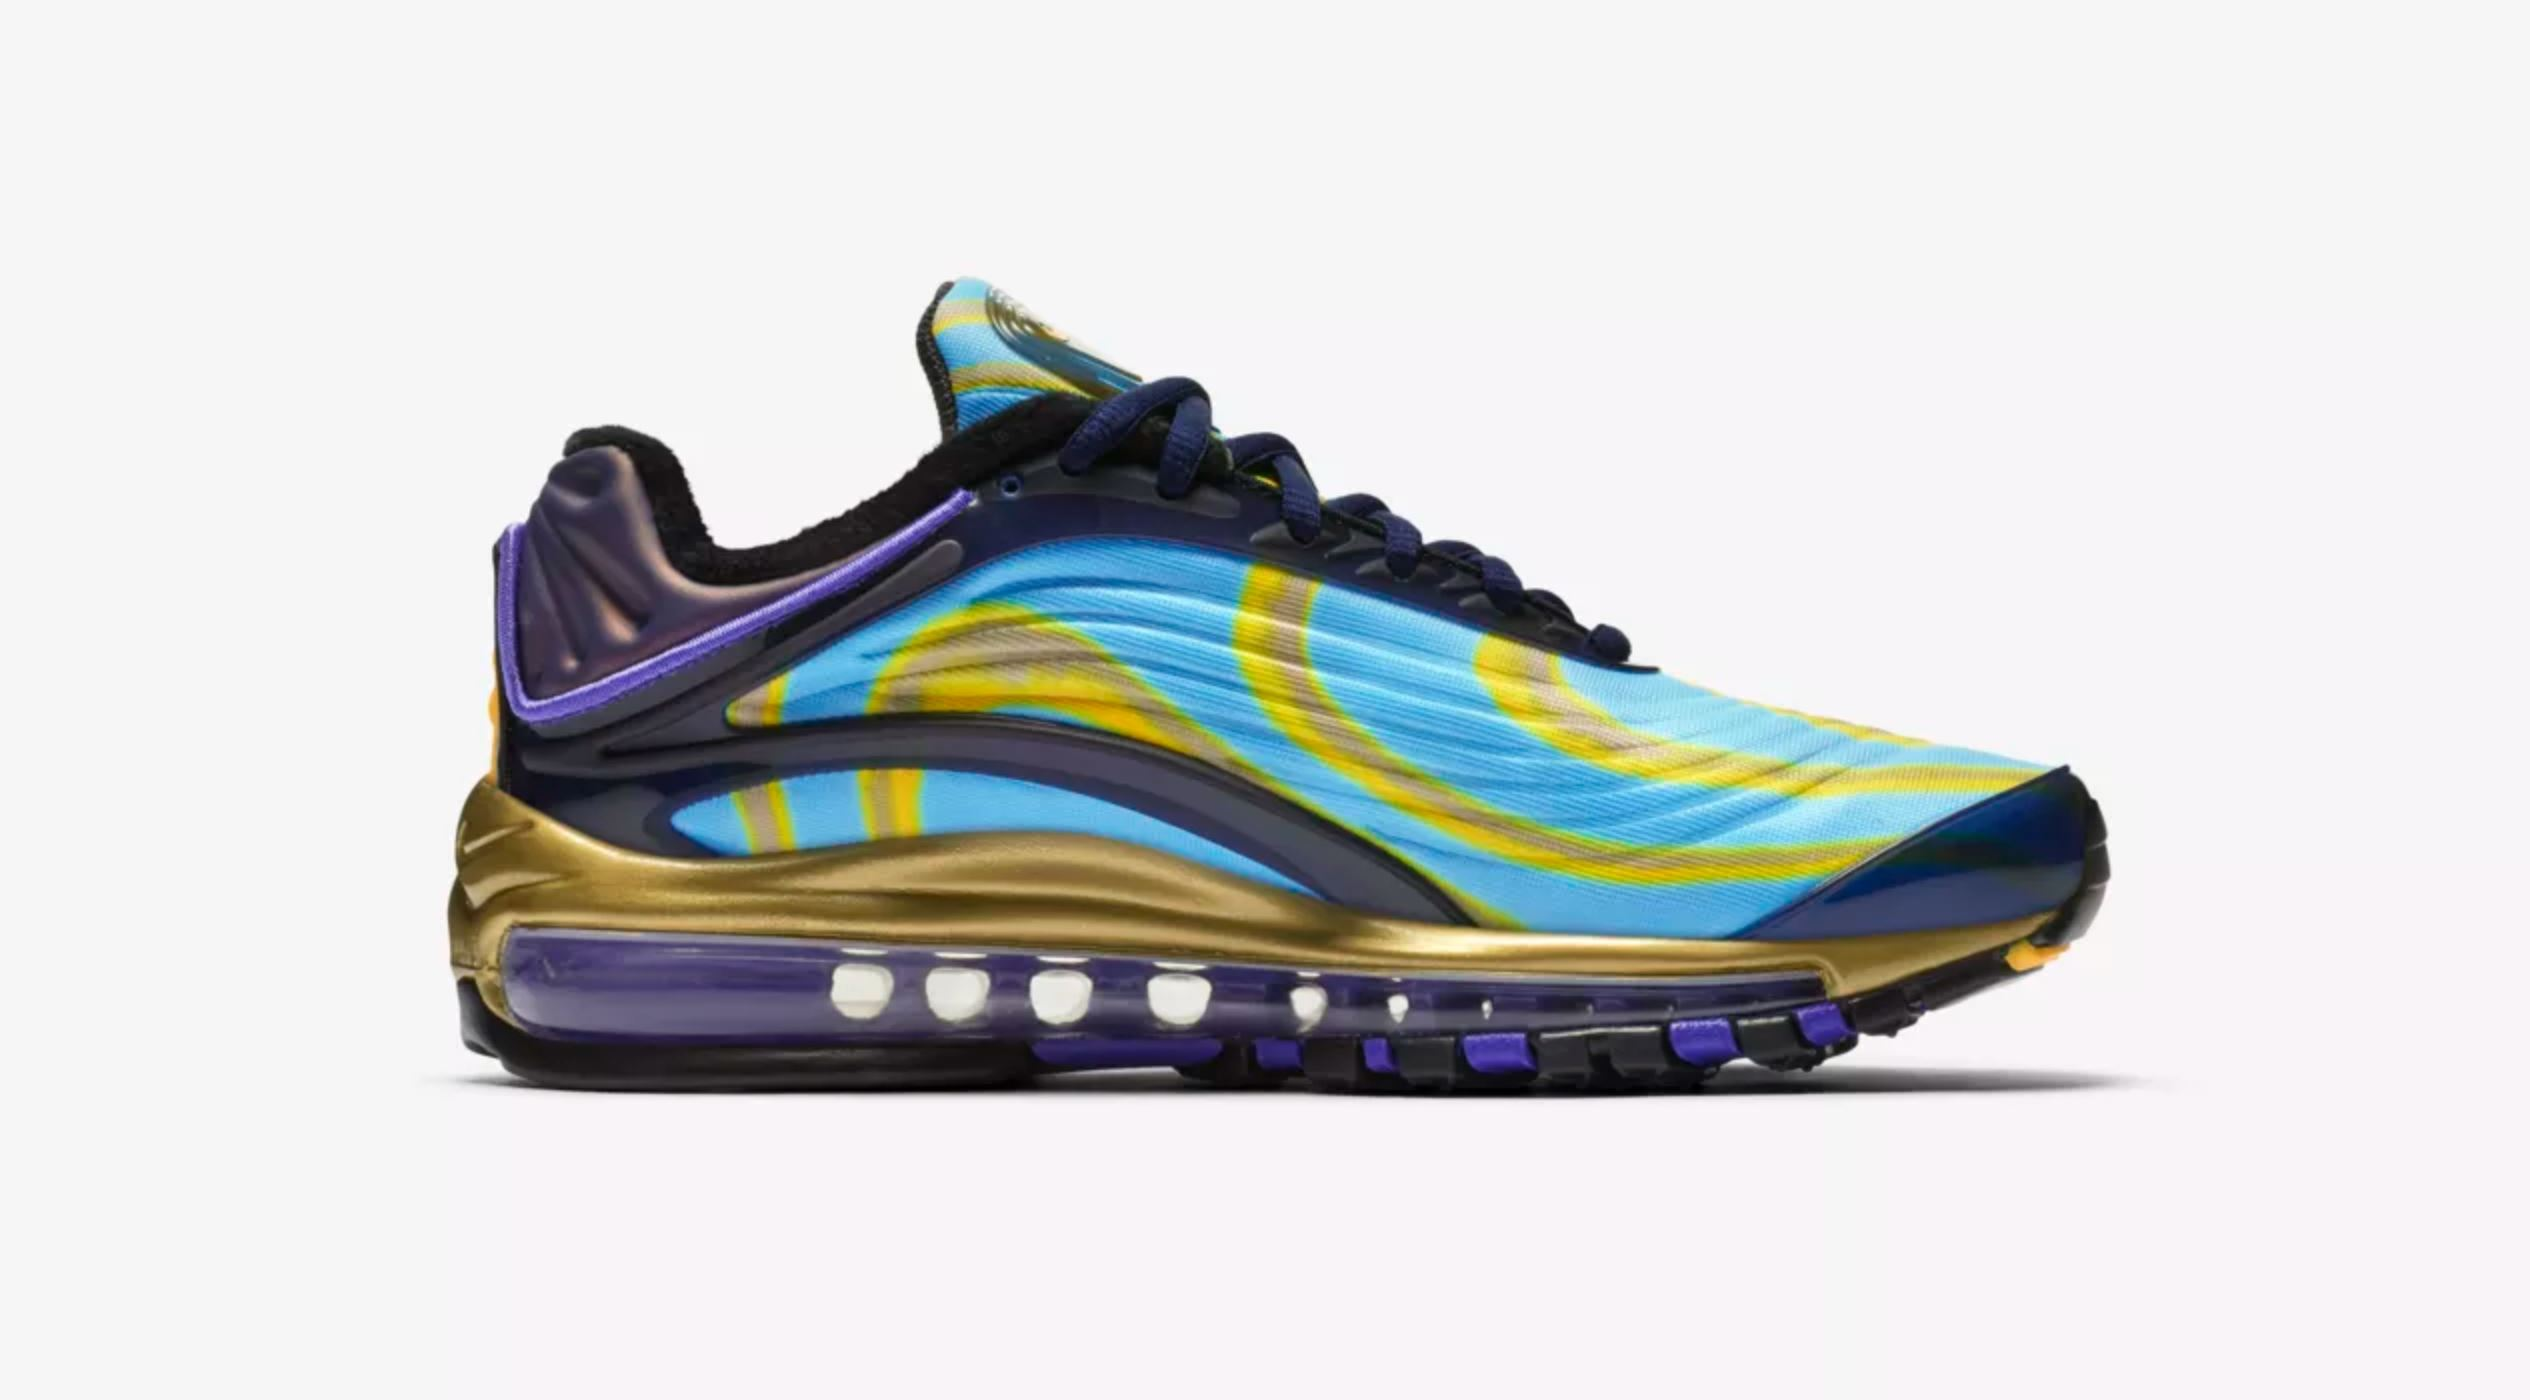 The Women's Nike Air Max Deluxe Release Date is Right Around